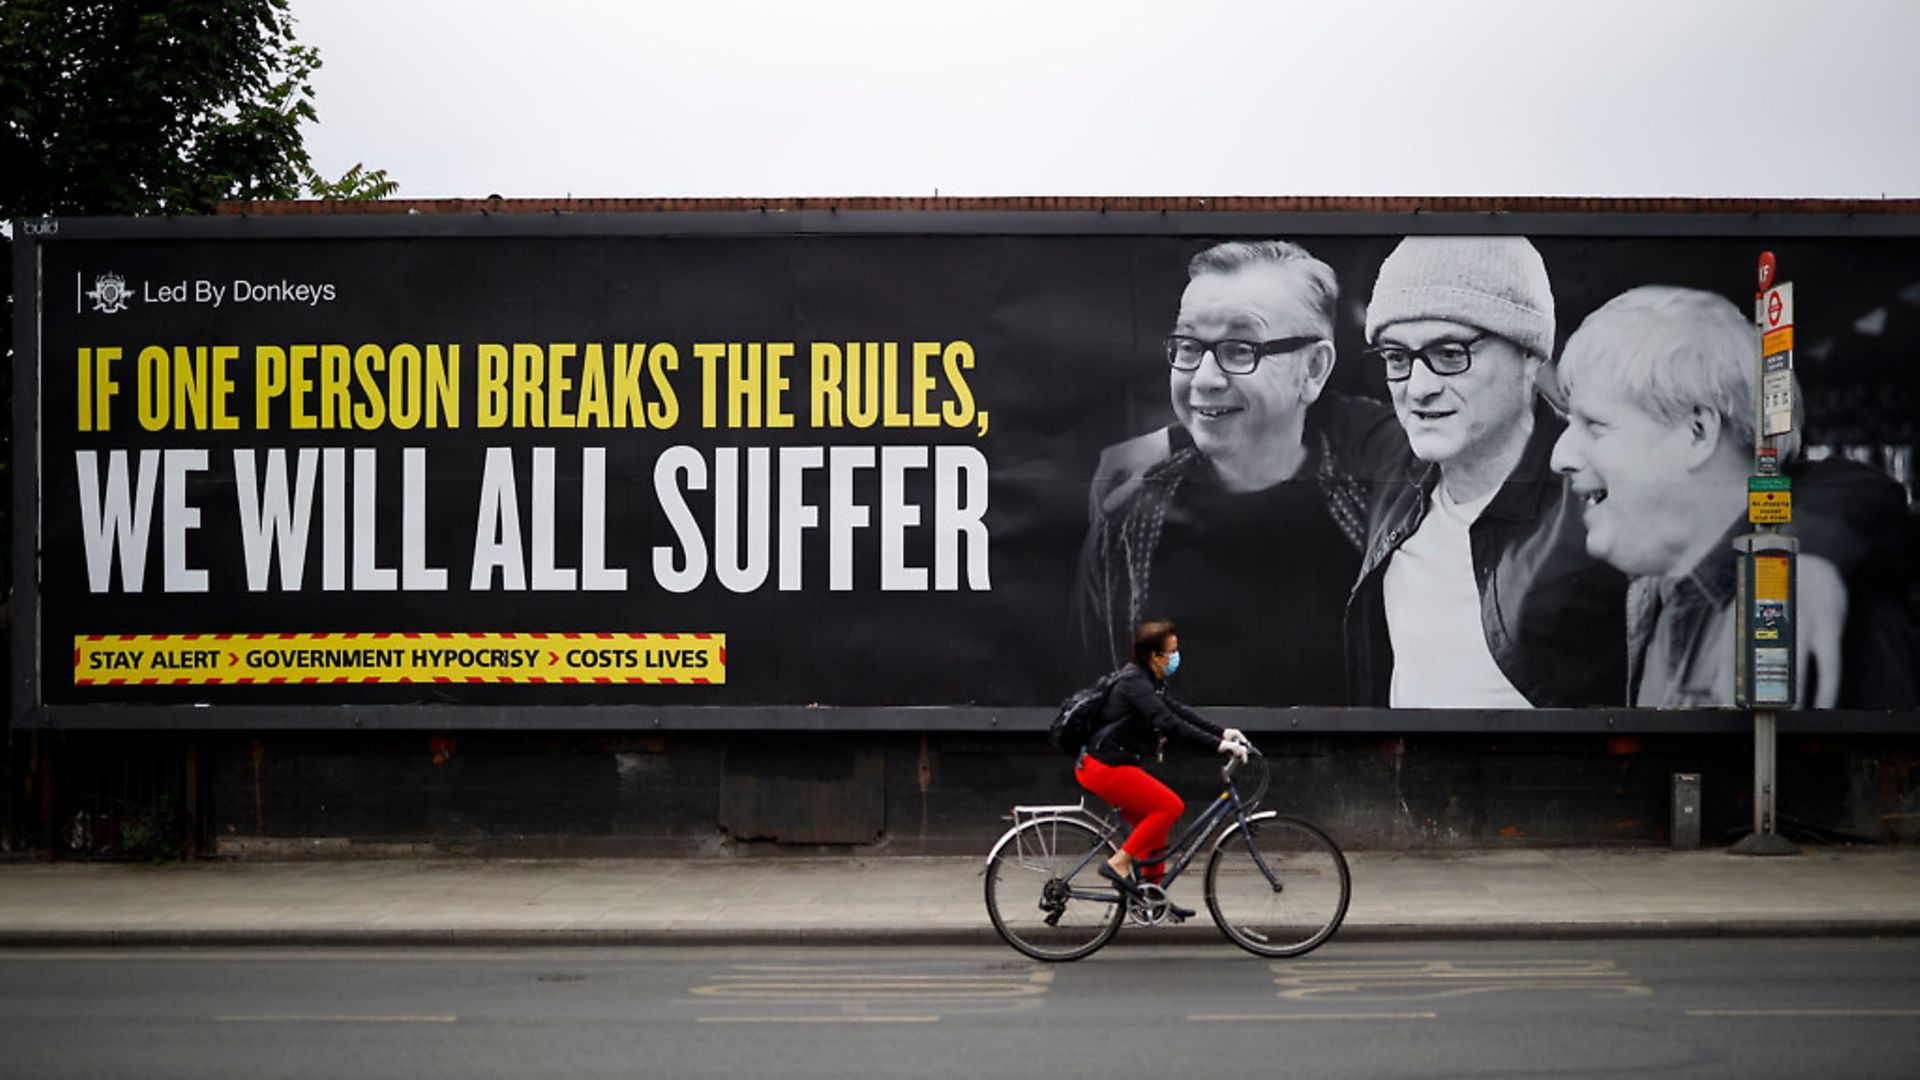 The billboard, exposing the government's hypocrisy over Dominic Cummings, was posted by political campaign group 'Led By Donkeys' in Kentish Town. Photo by TOLGA AKMEN/AFP via Getty Images - Credit: AFP via Getty Images